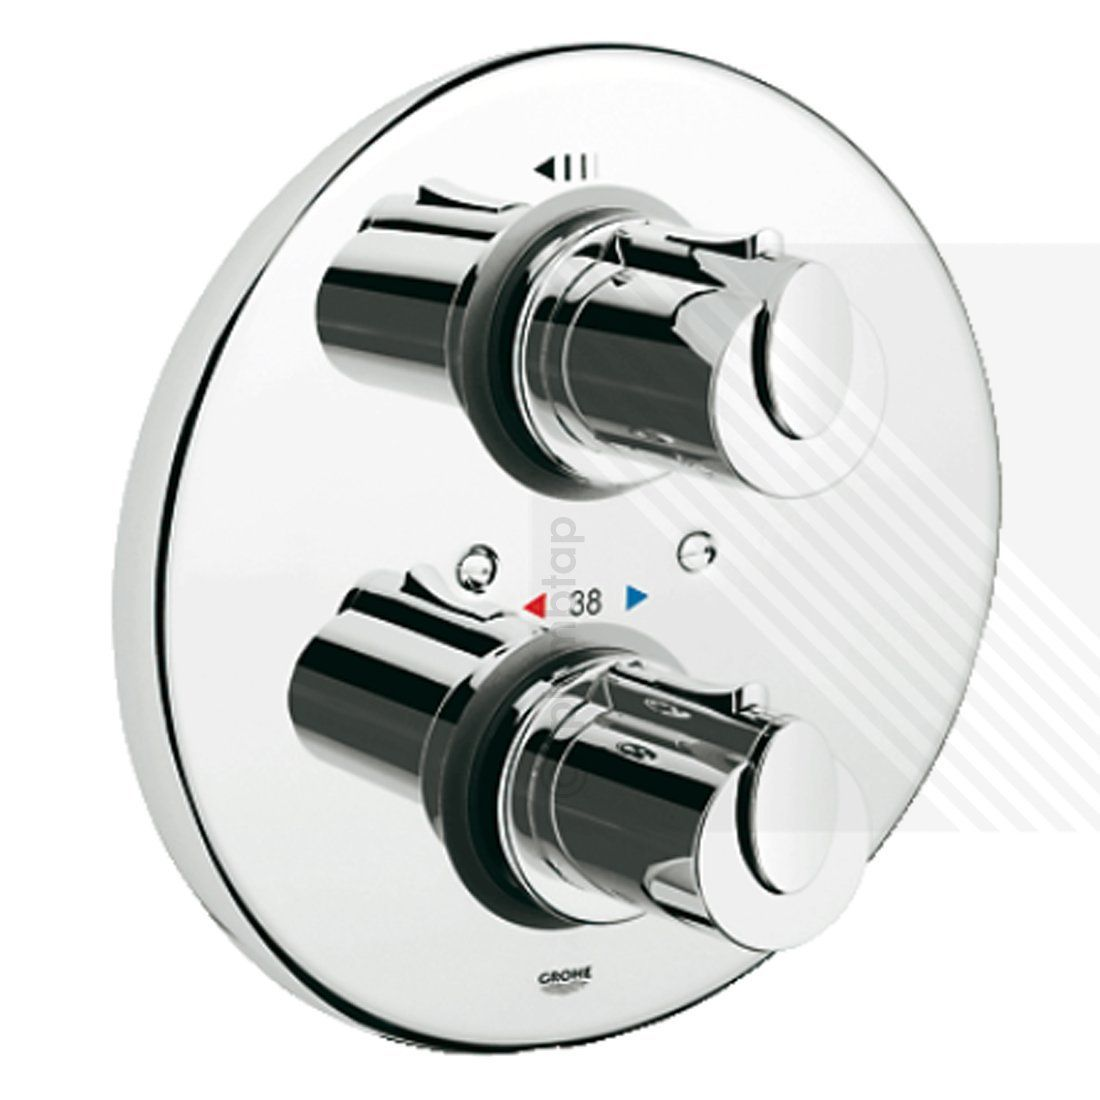 Cool Grohtherm 1000 Concealed Shower System 34162001 IE43